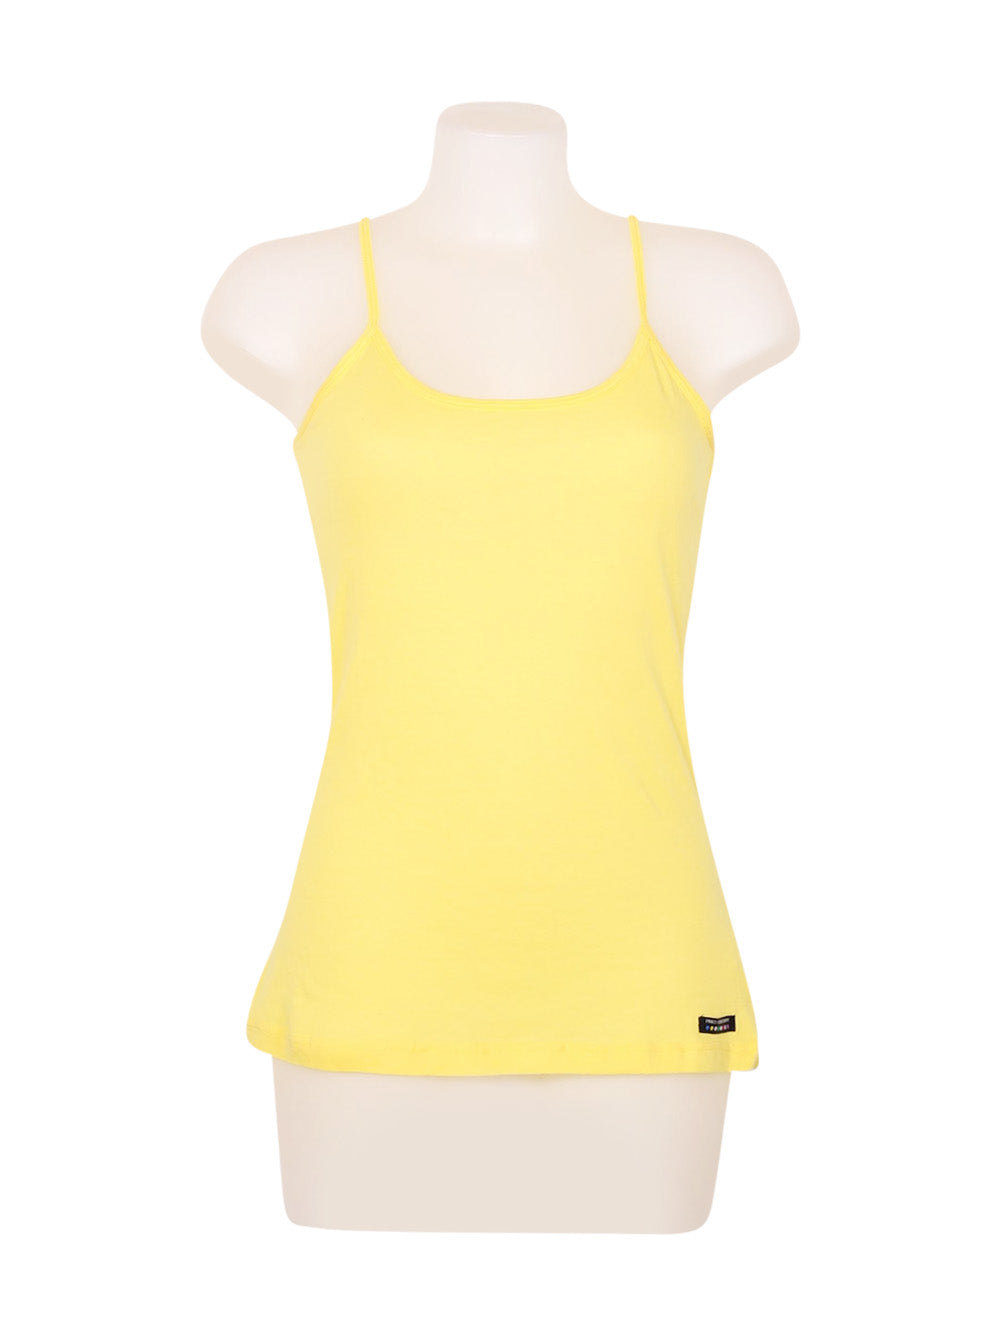 Front photo of Preloved Pinko Yellow Woman's sleeveless top - size 10/M